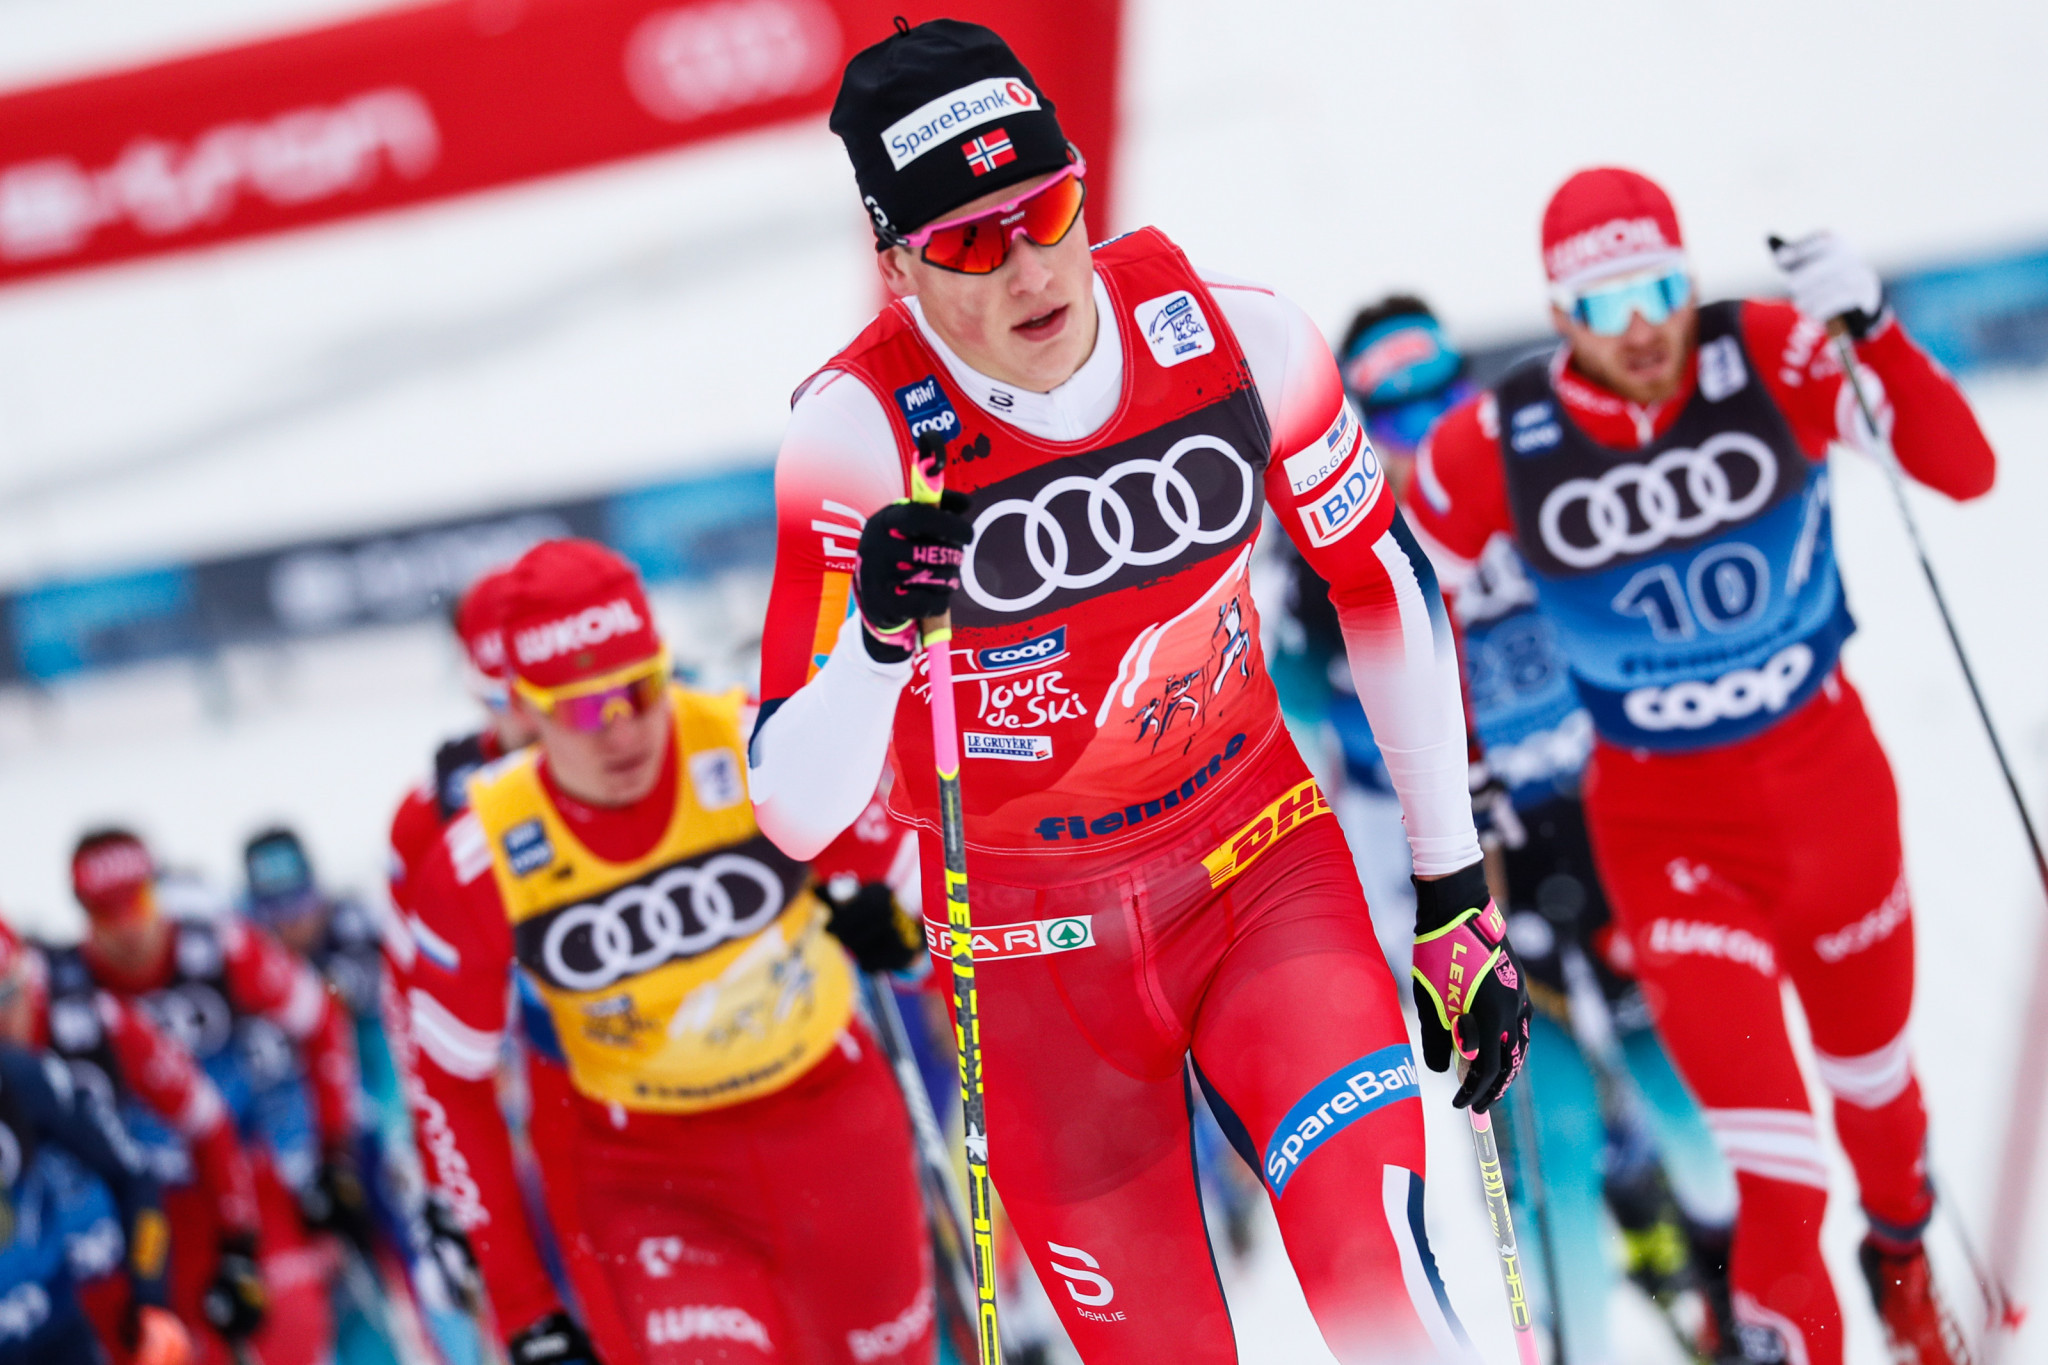 Klæbo and Jacobsen triumph at Tour de Ski grand final in Val di Fiemme